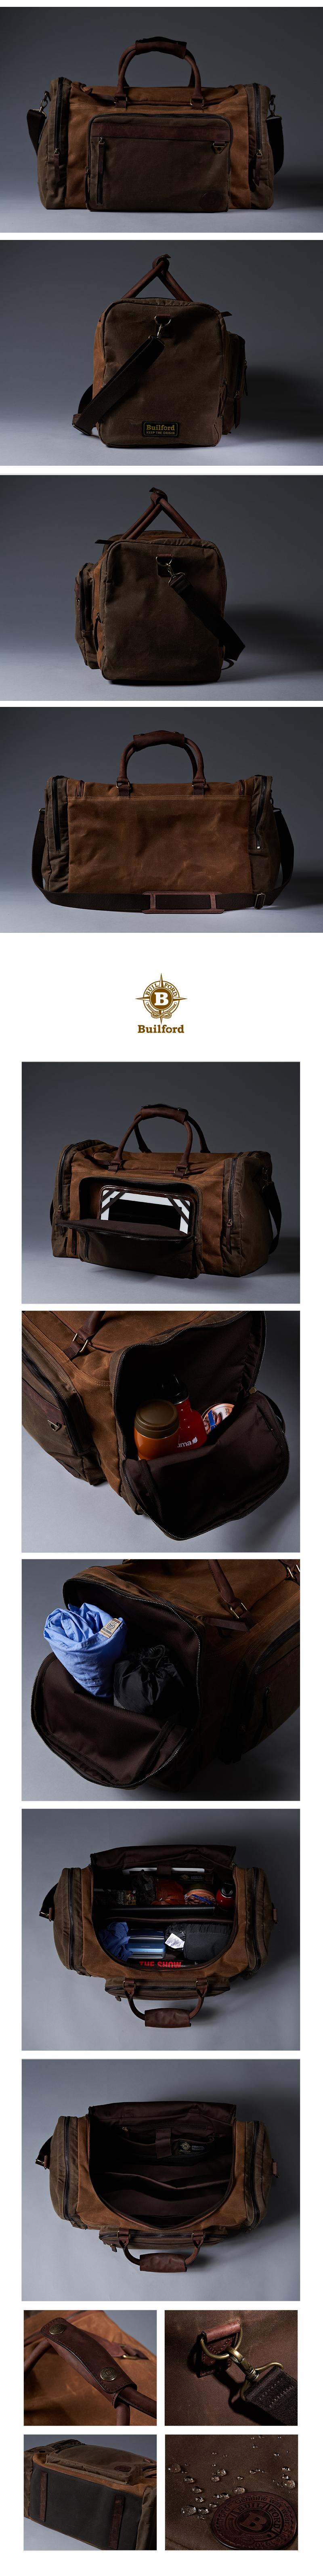 Weekend Duffle bag_2